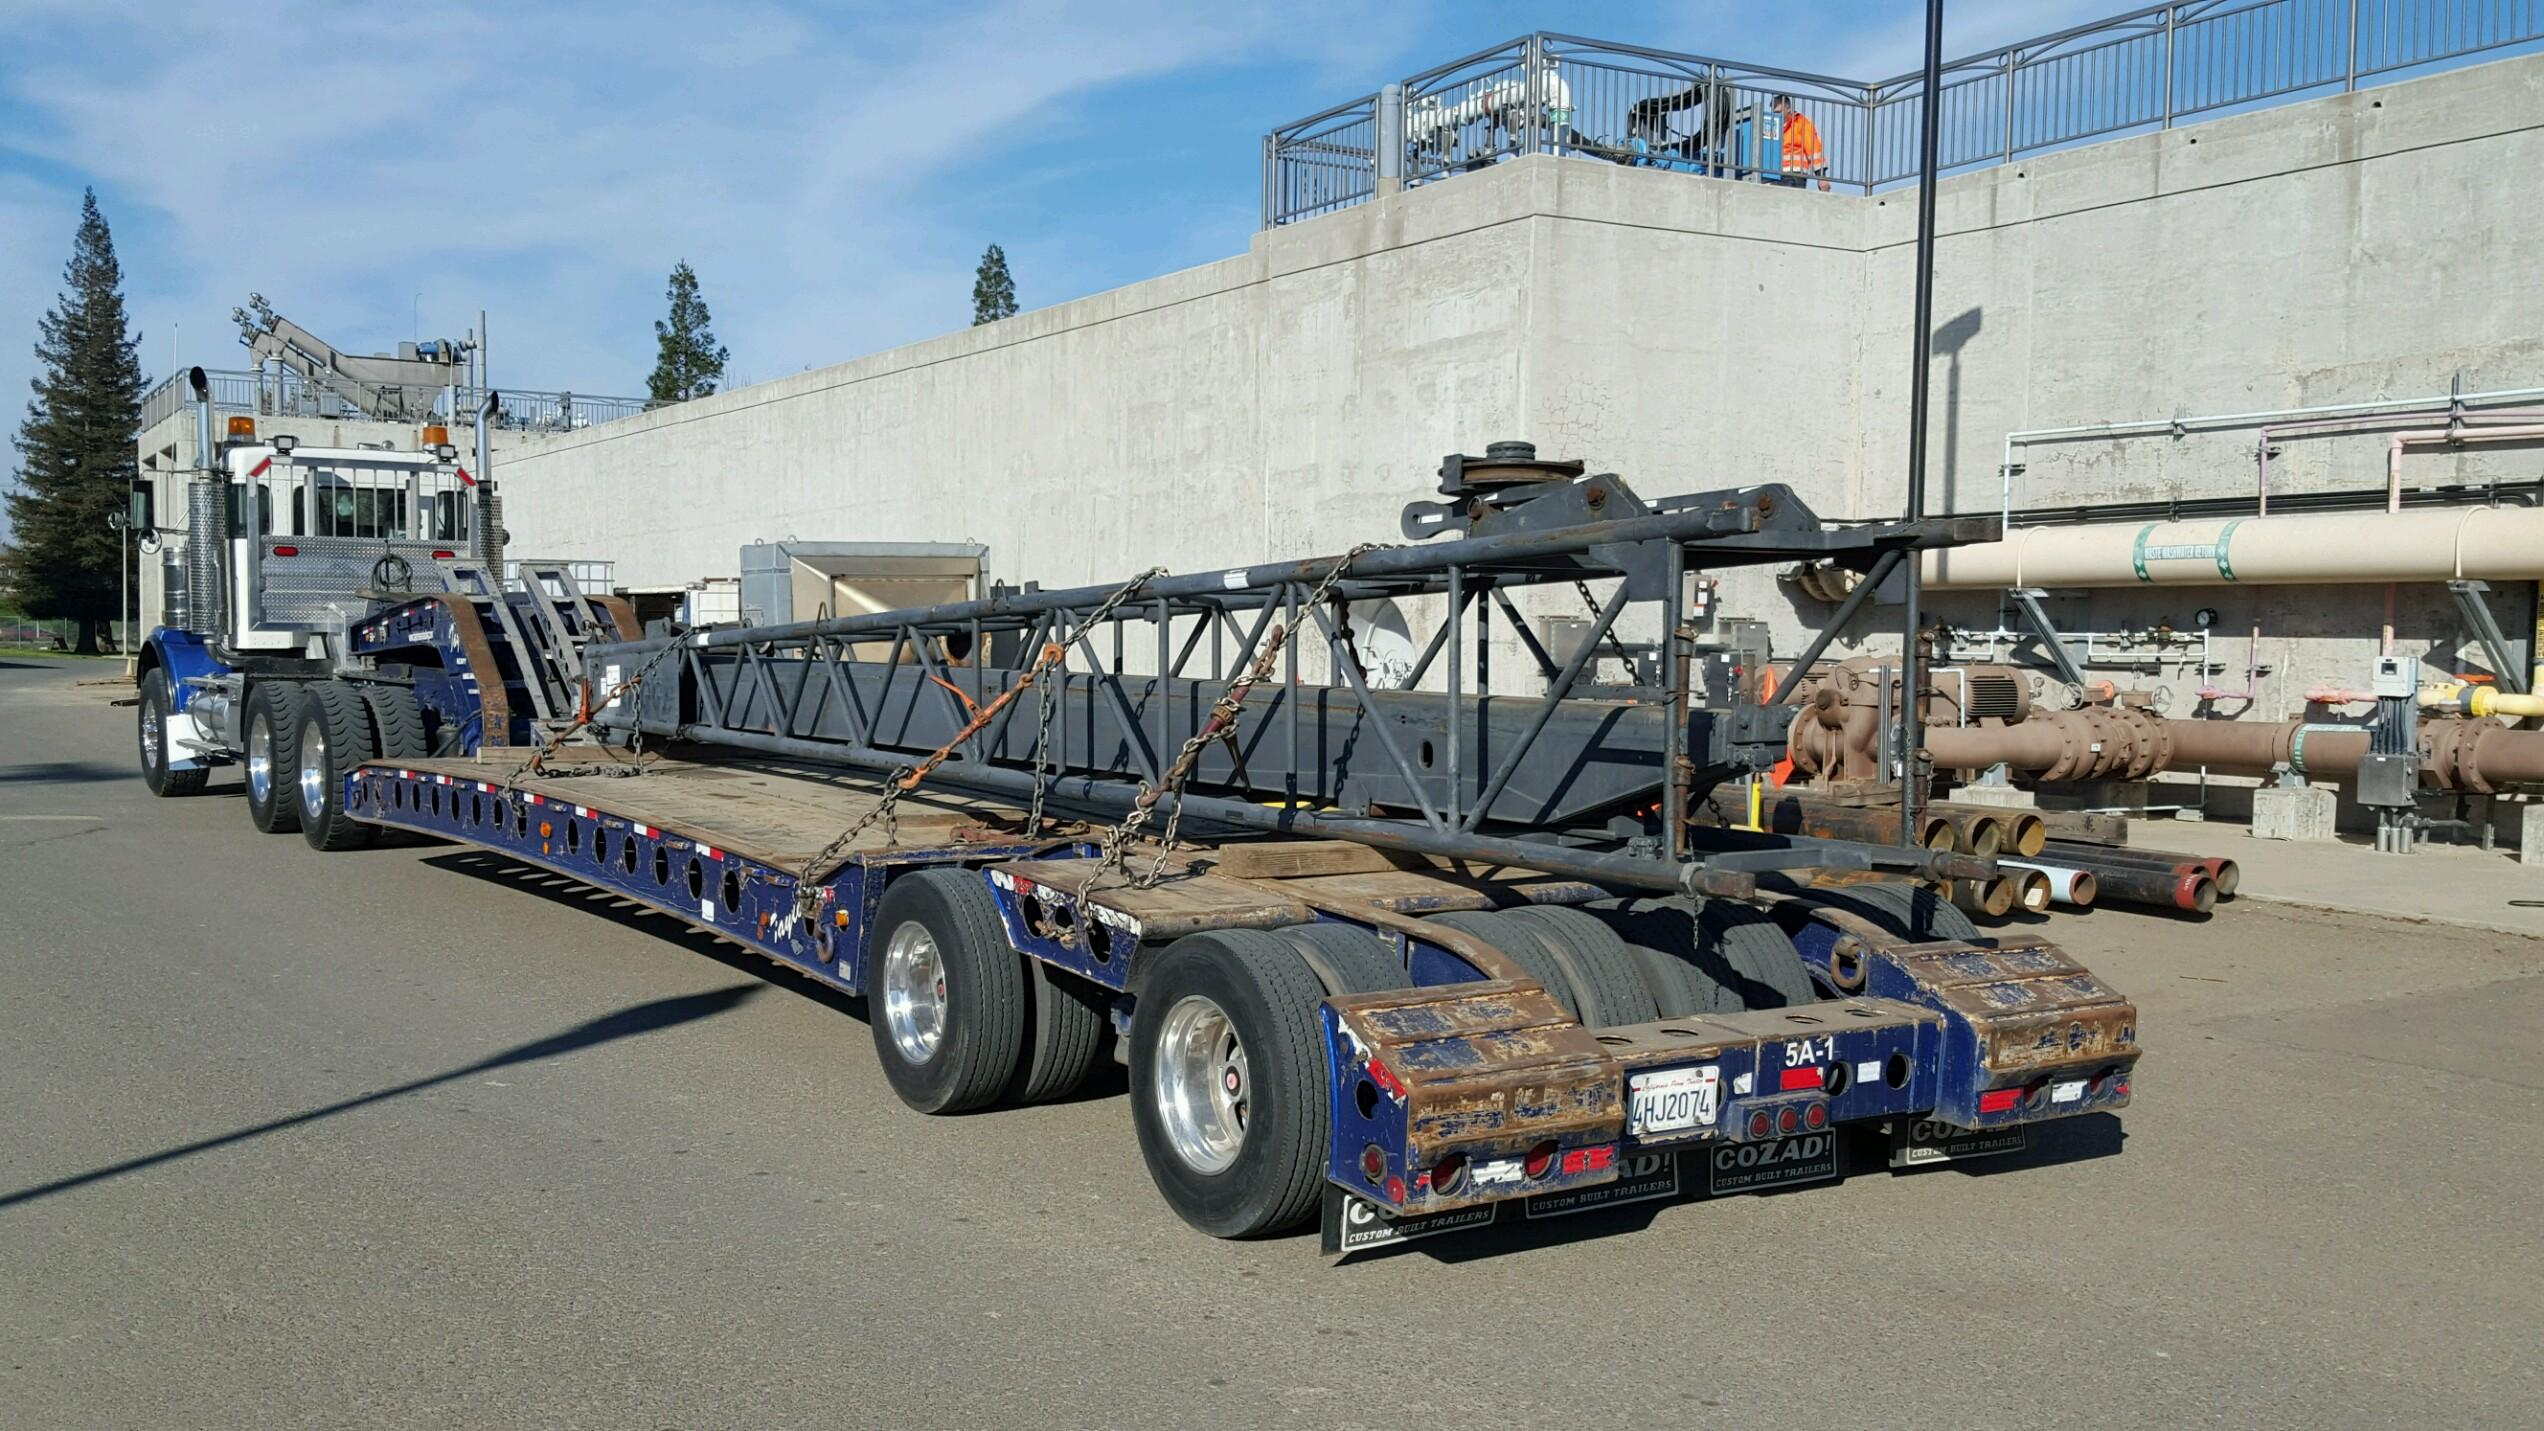 taylor heavy hauling  u2013 we haul the heavy u0026 39 s